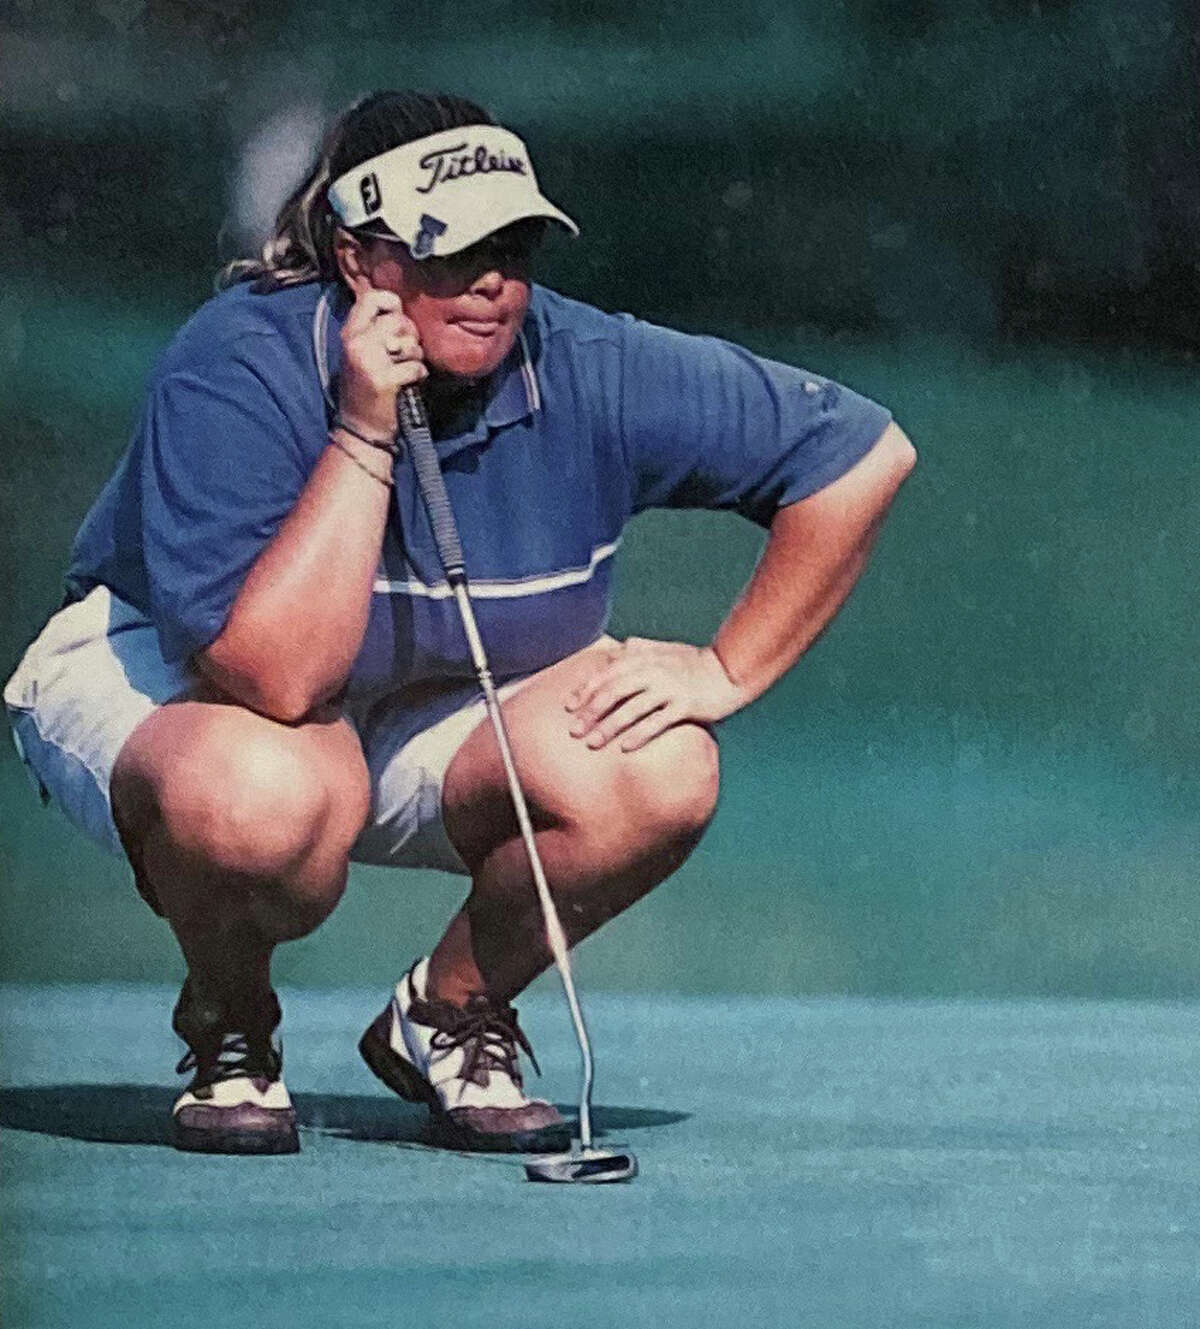 Colleen Cashman, 25, lines up a putt at the U.S. Open in 2002. She was on top of the leaderboard after 9 holes when she was a late-minute sub for Dottie Pepper. (Provided/U.S. Open Magazine)